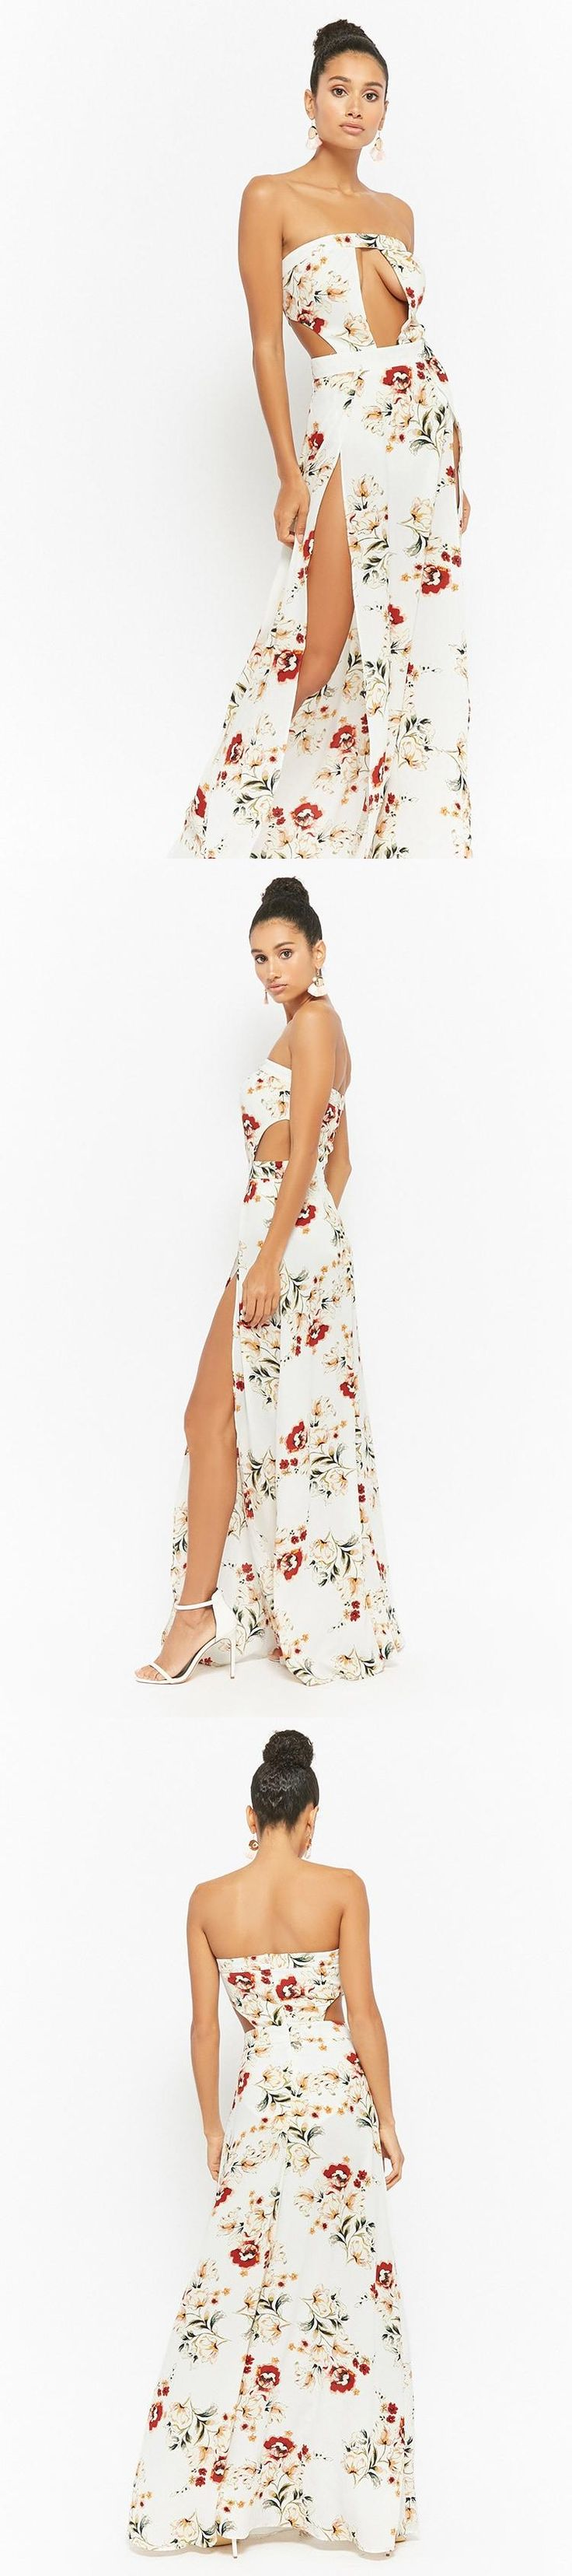 Floral Tube Maxi Dress // 48.00 USD // Forever 21